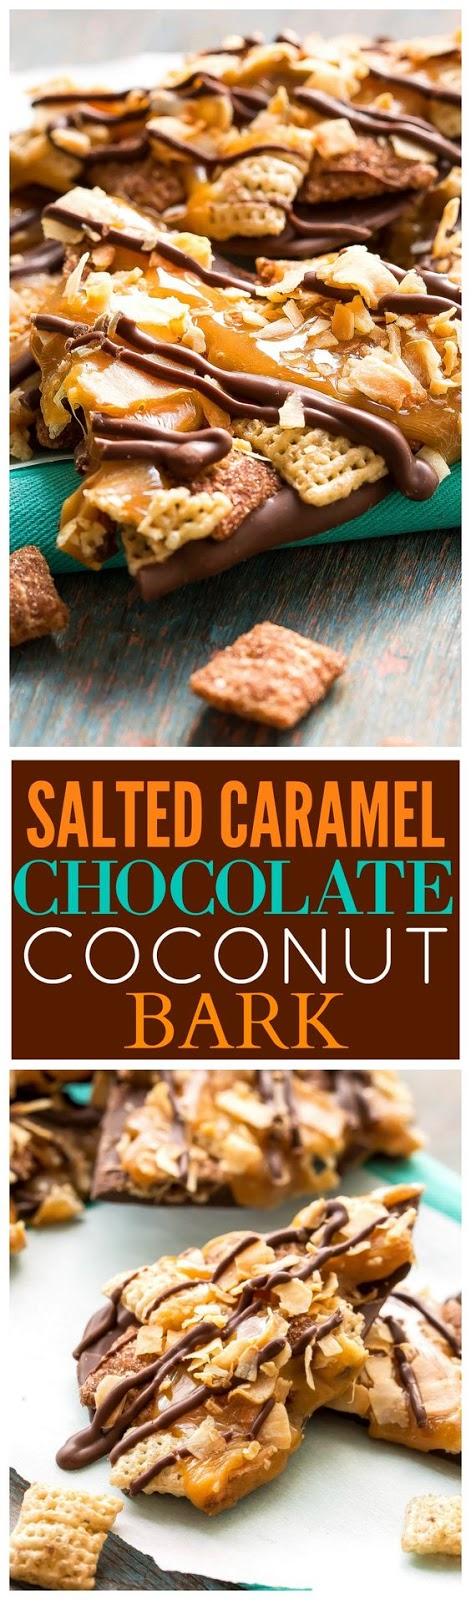 Salted Caramel Chocolate Coconut Bark